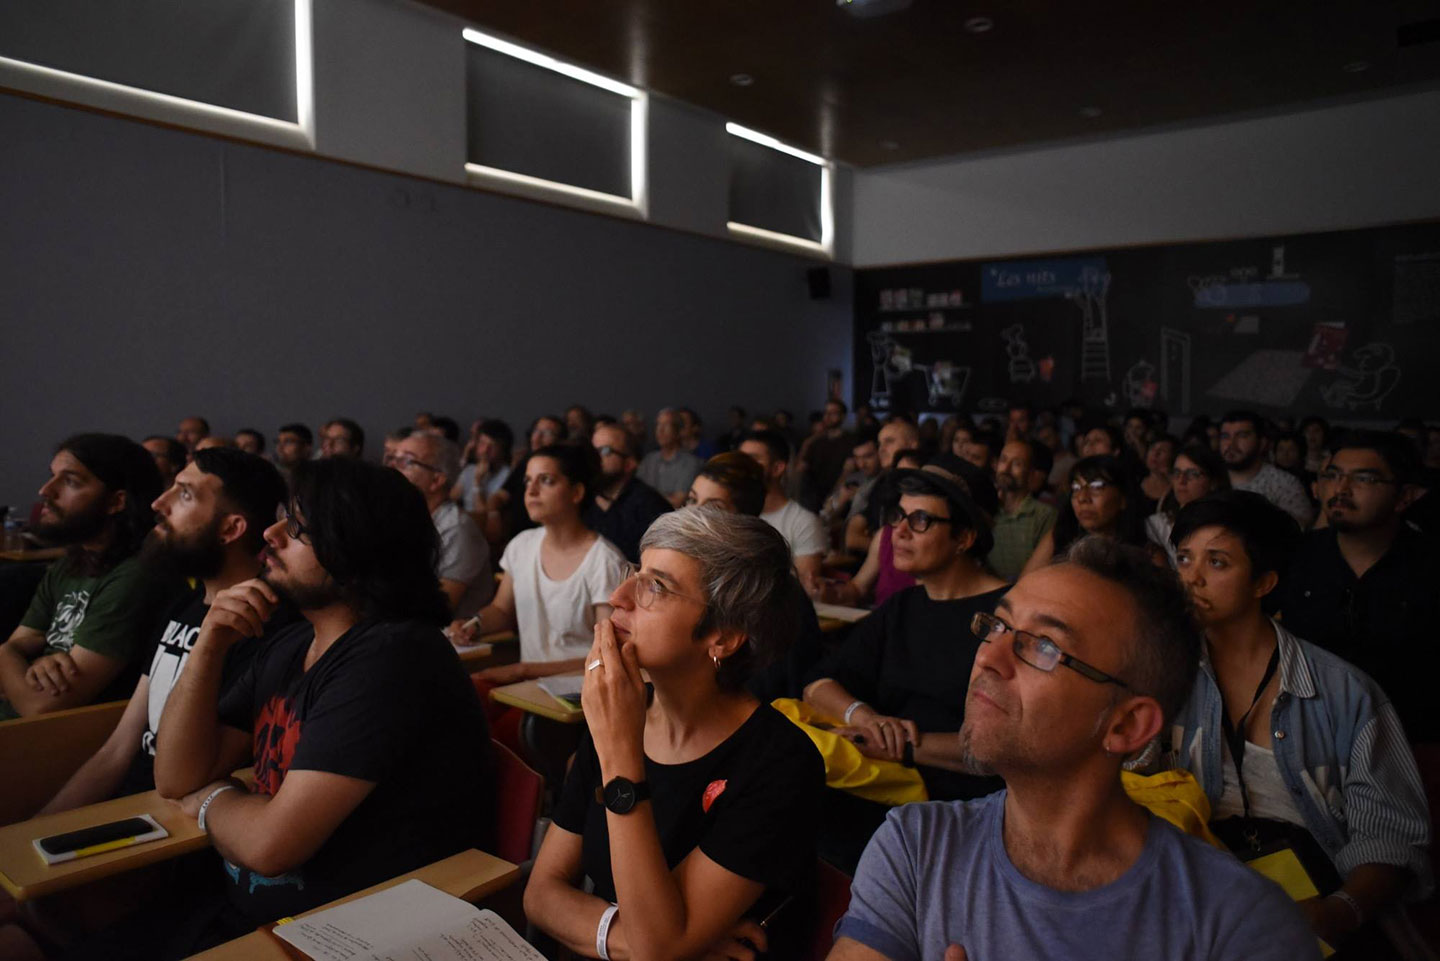 The audience during the presentation of Herminio Fernández. Photo: Provi Morillas